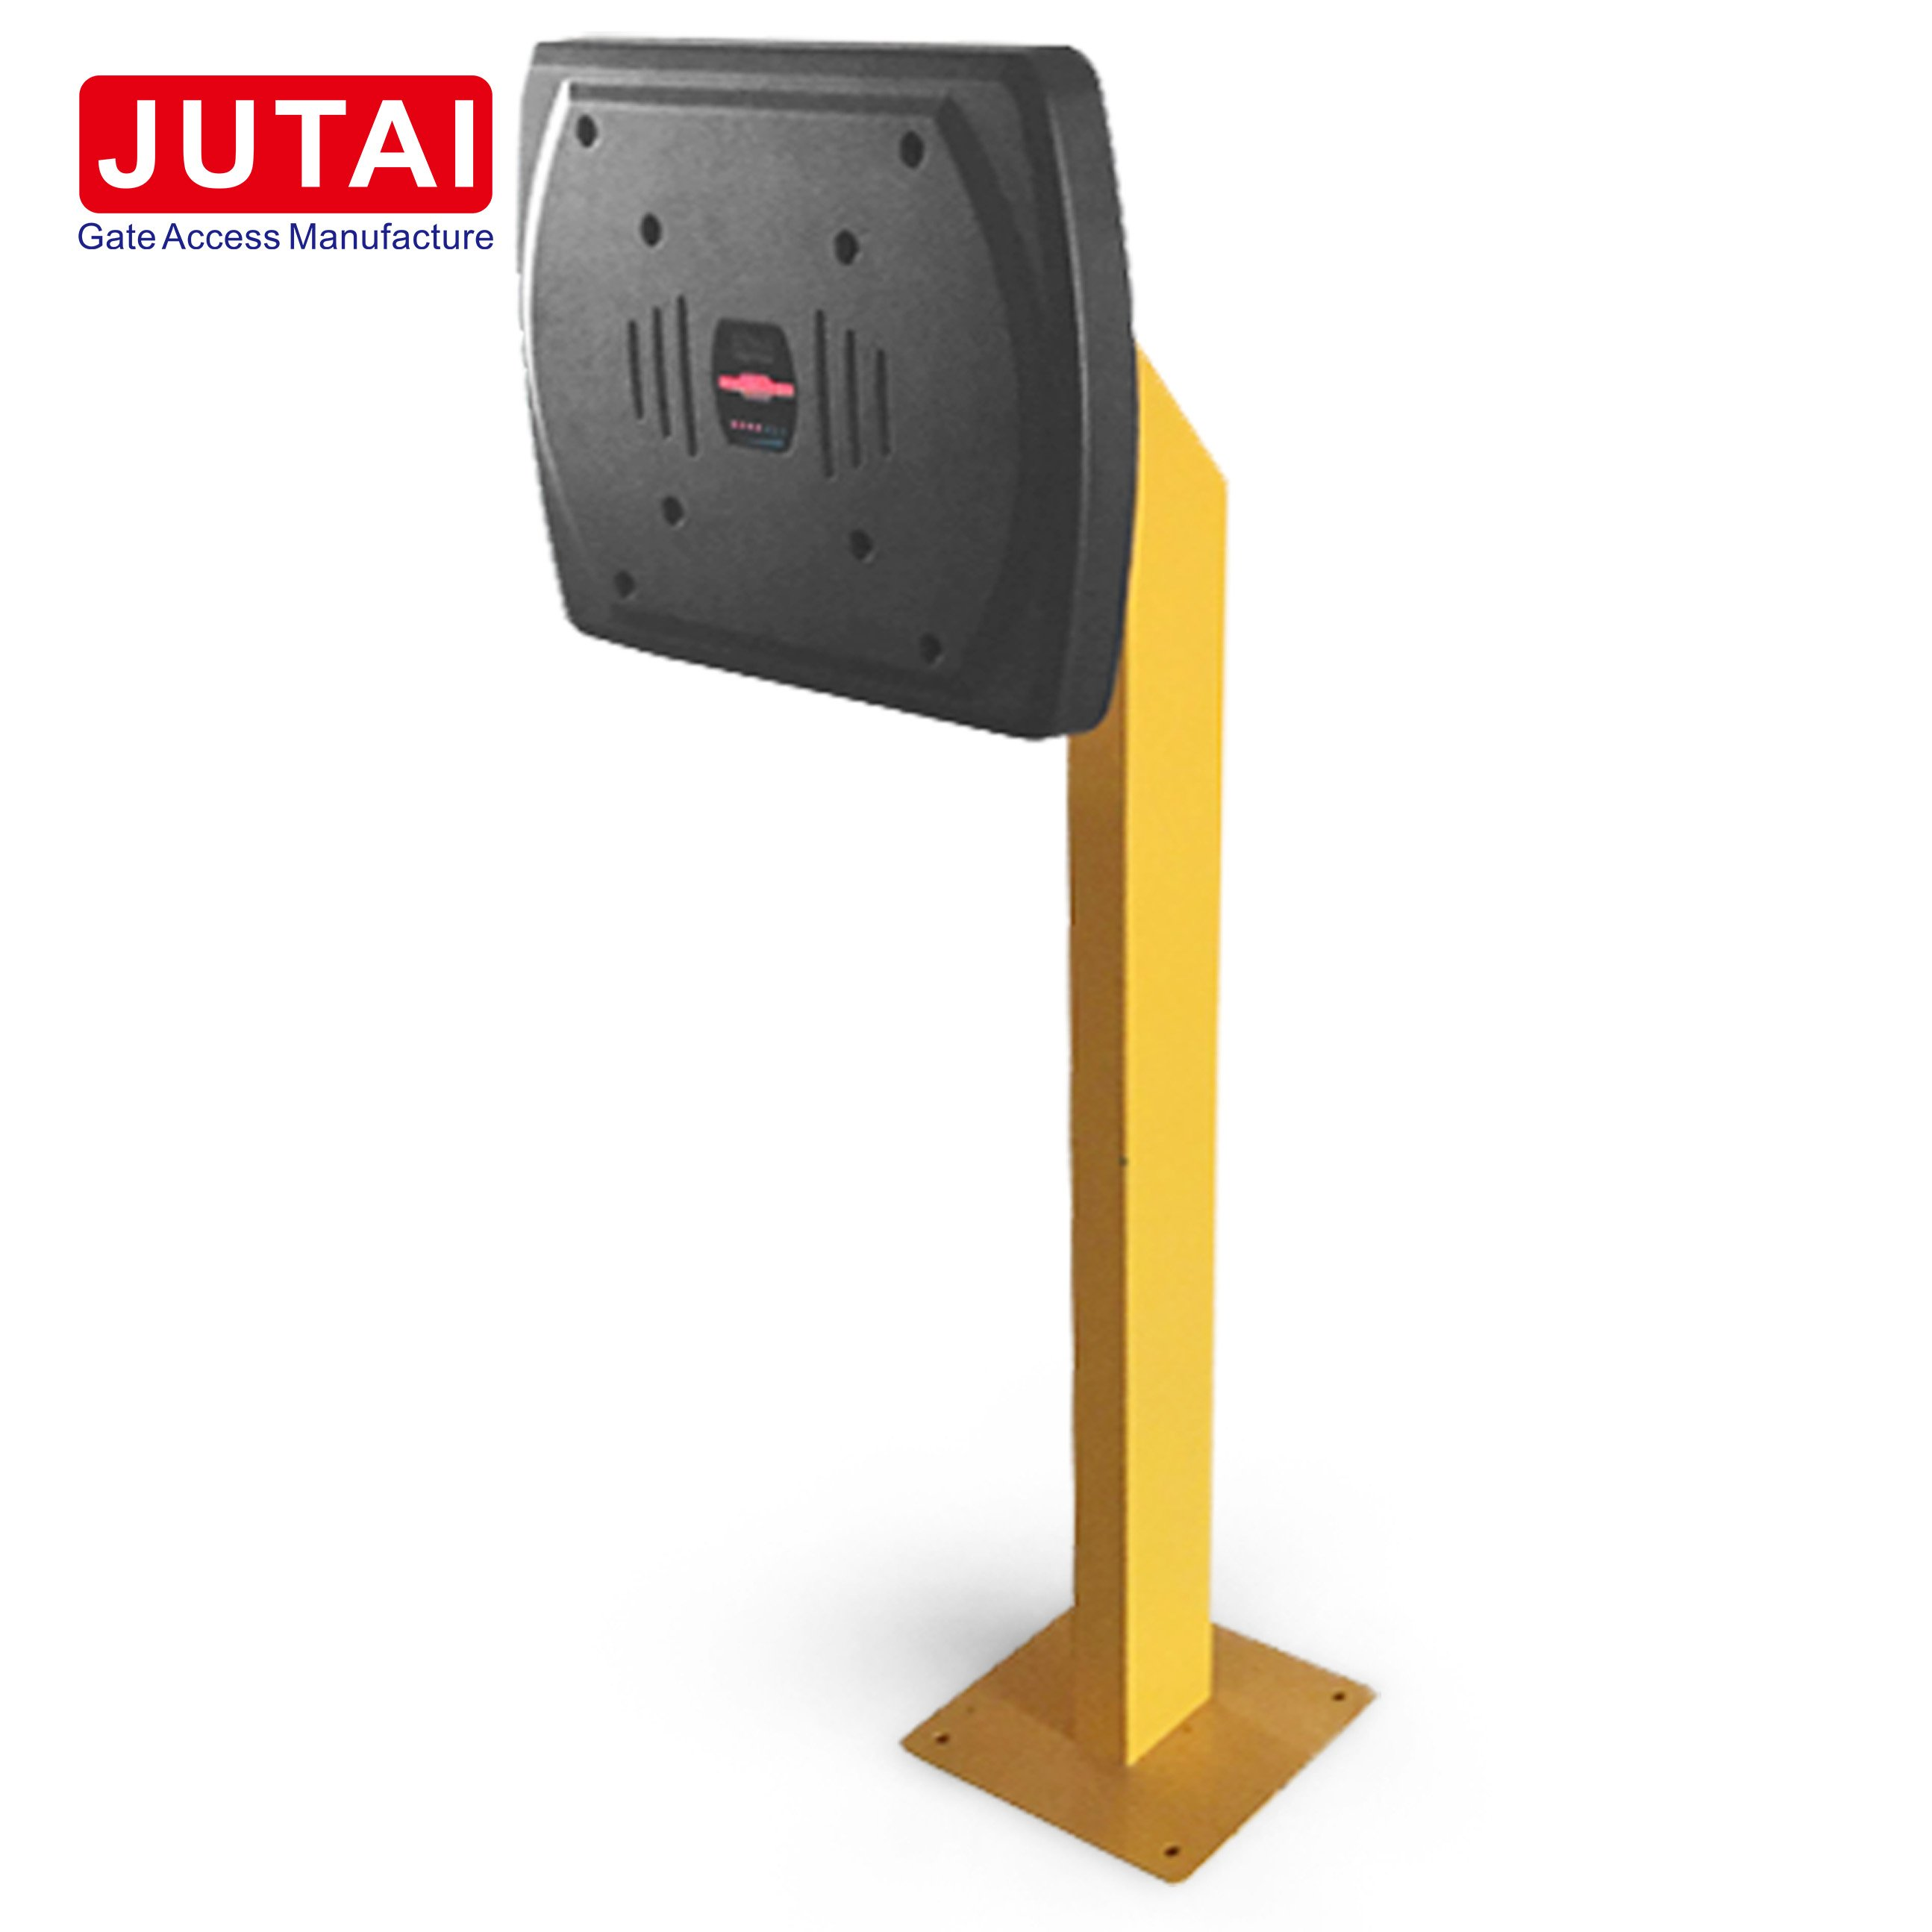 Proximity RFID Reader Featuring Compact Dimensions and Read Range of up to 90 cm